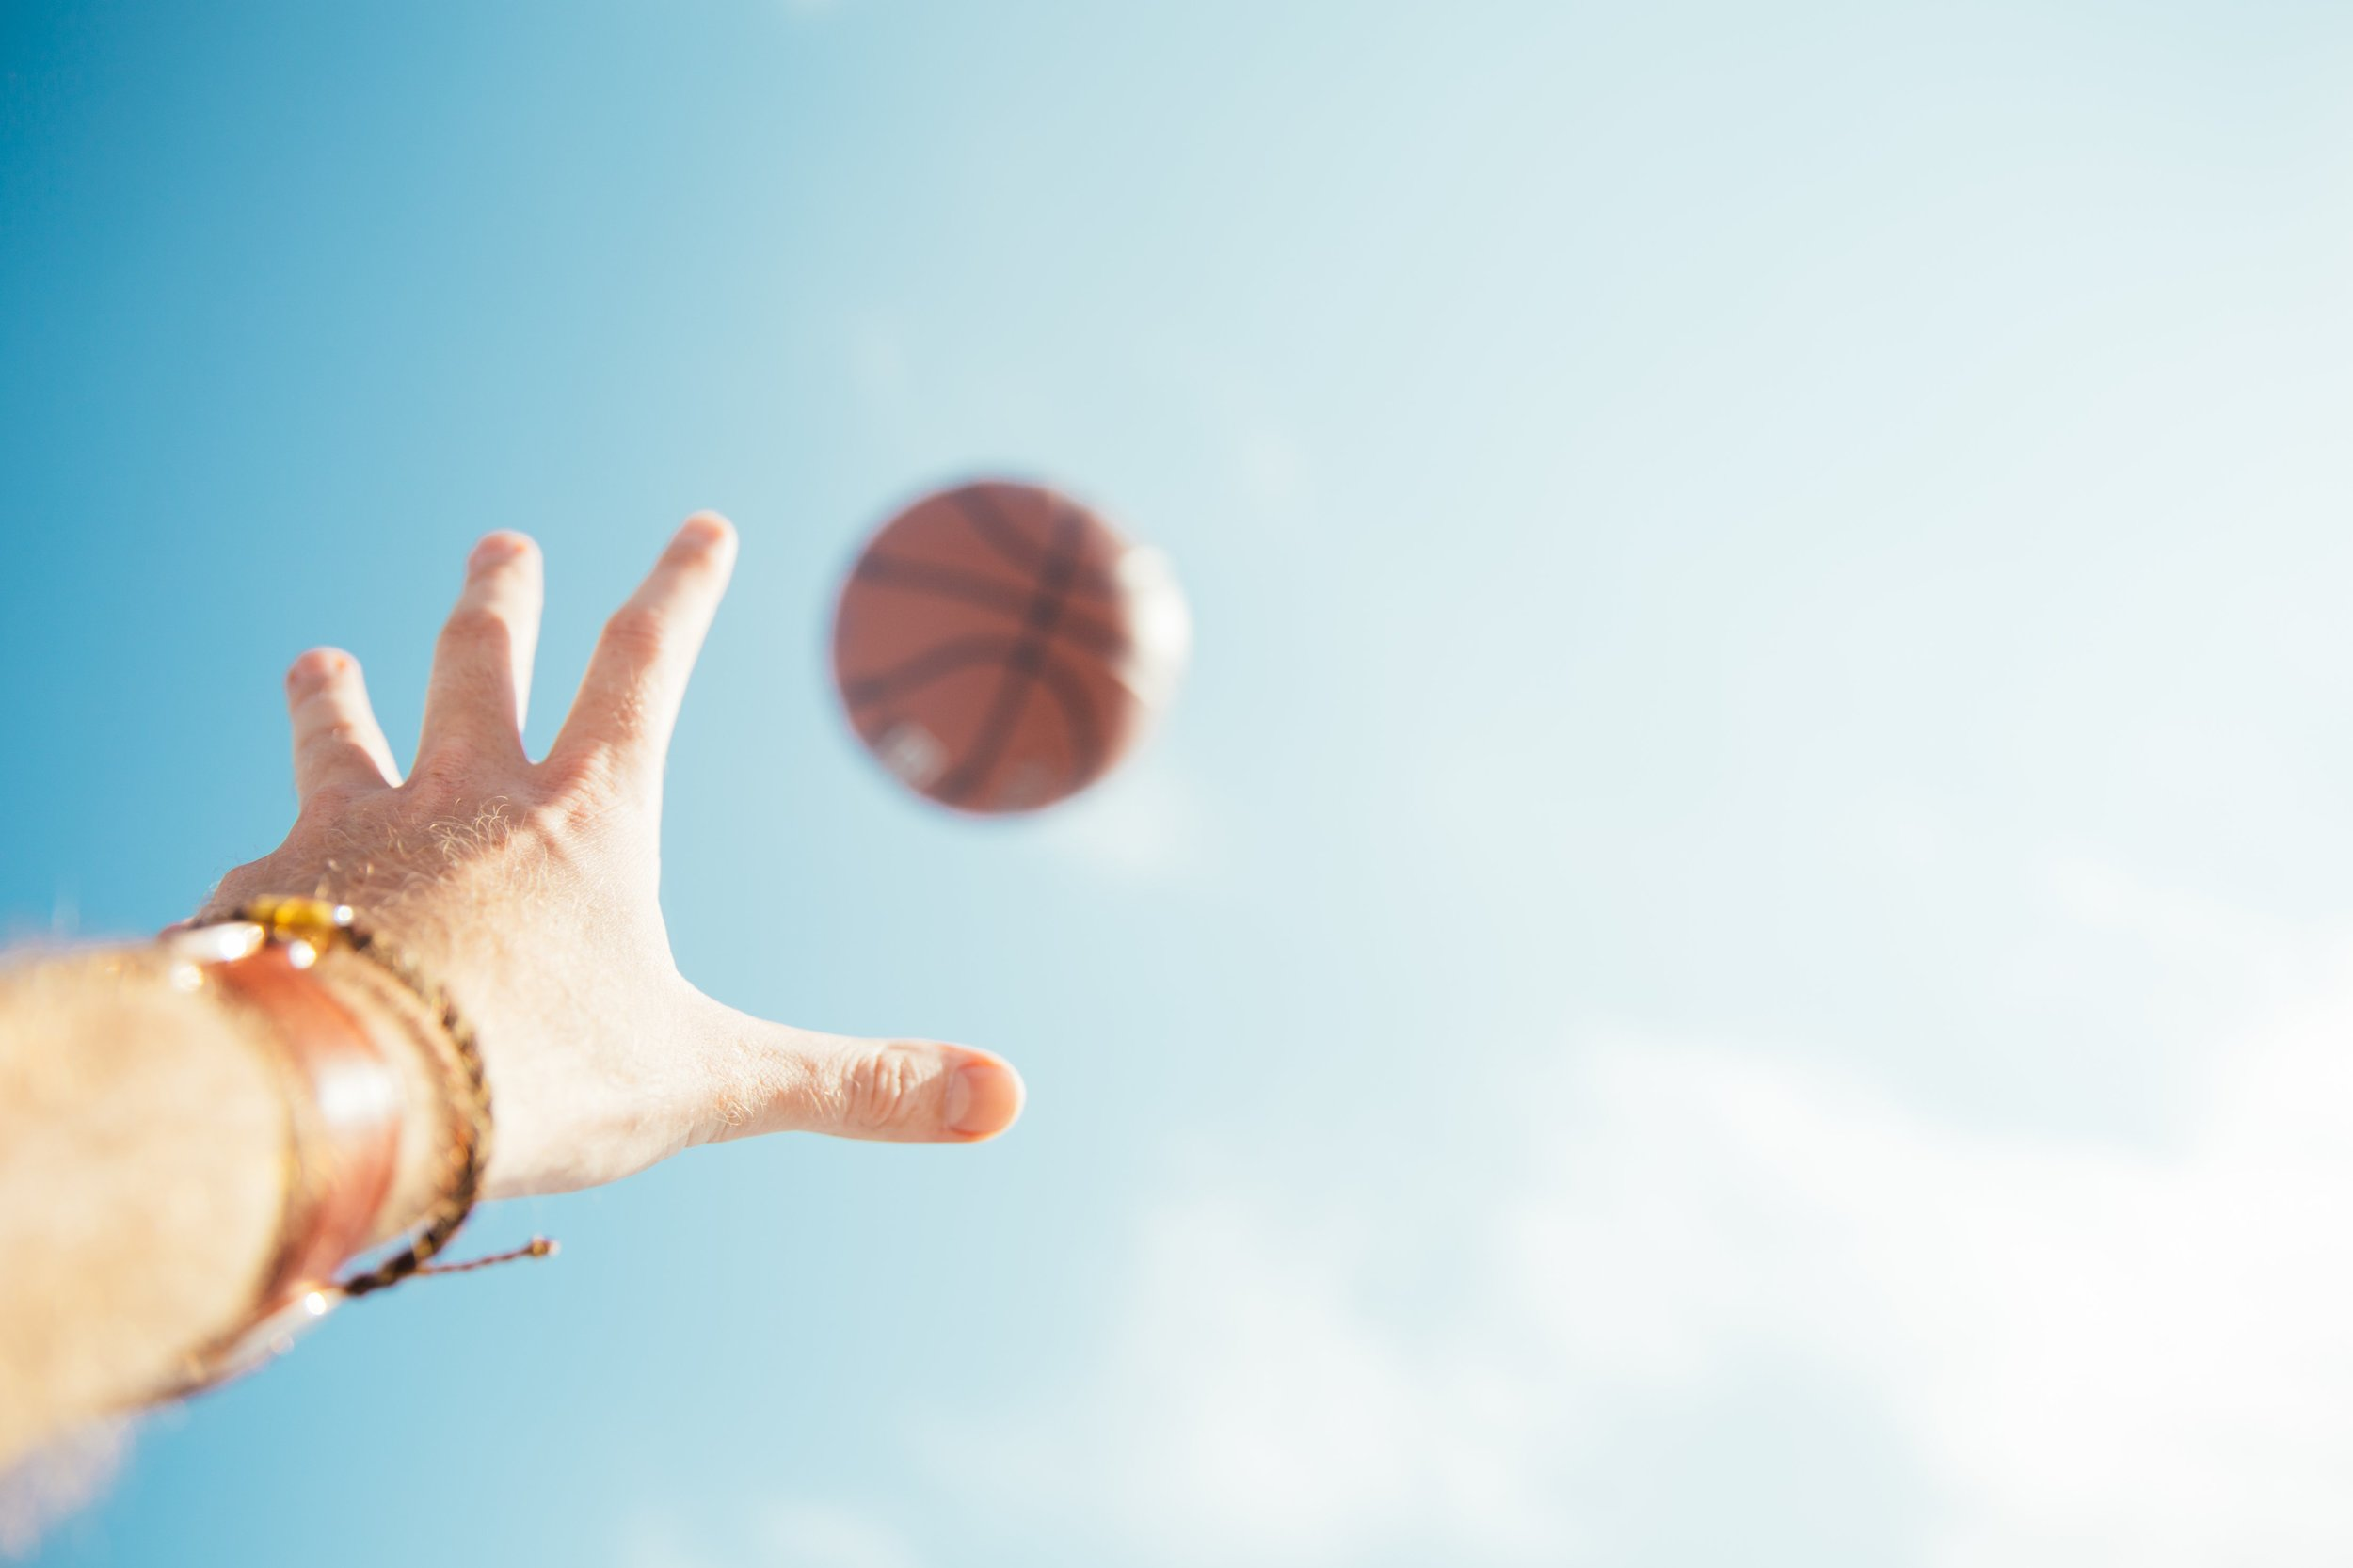 throwing-basketball_4460x4460.jpg